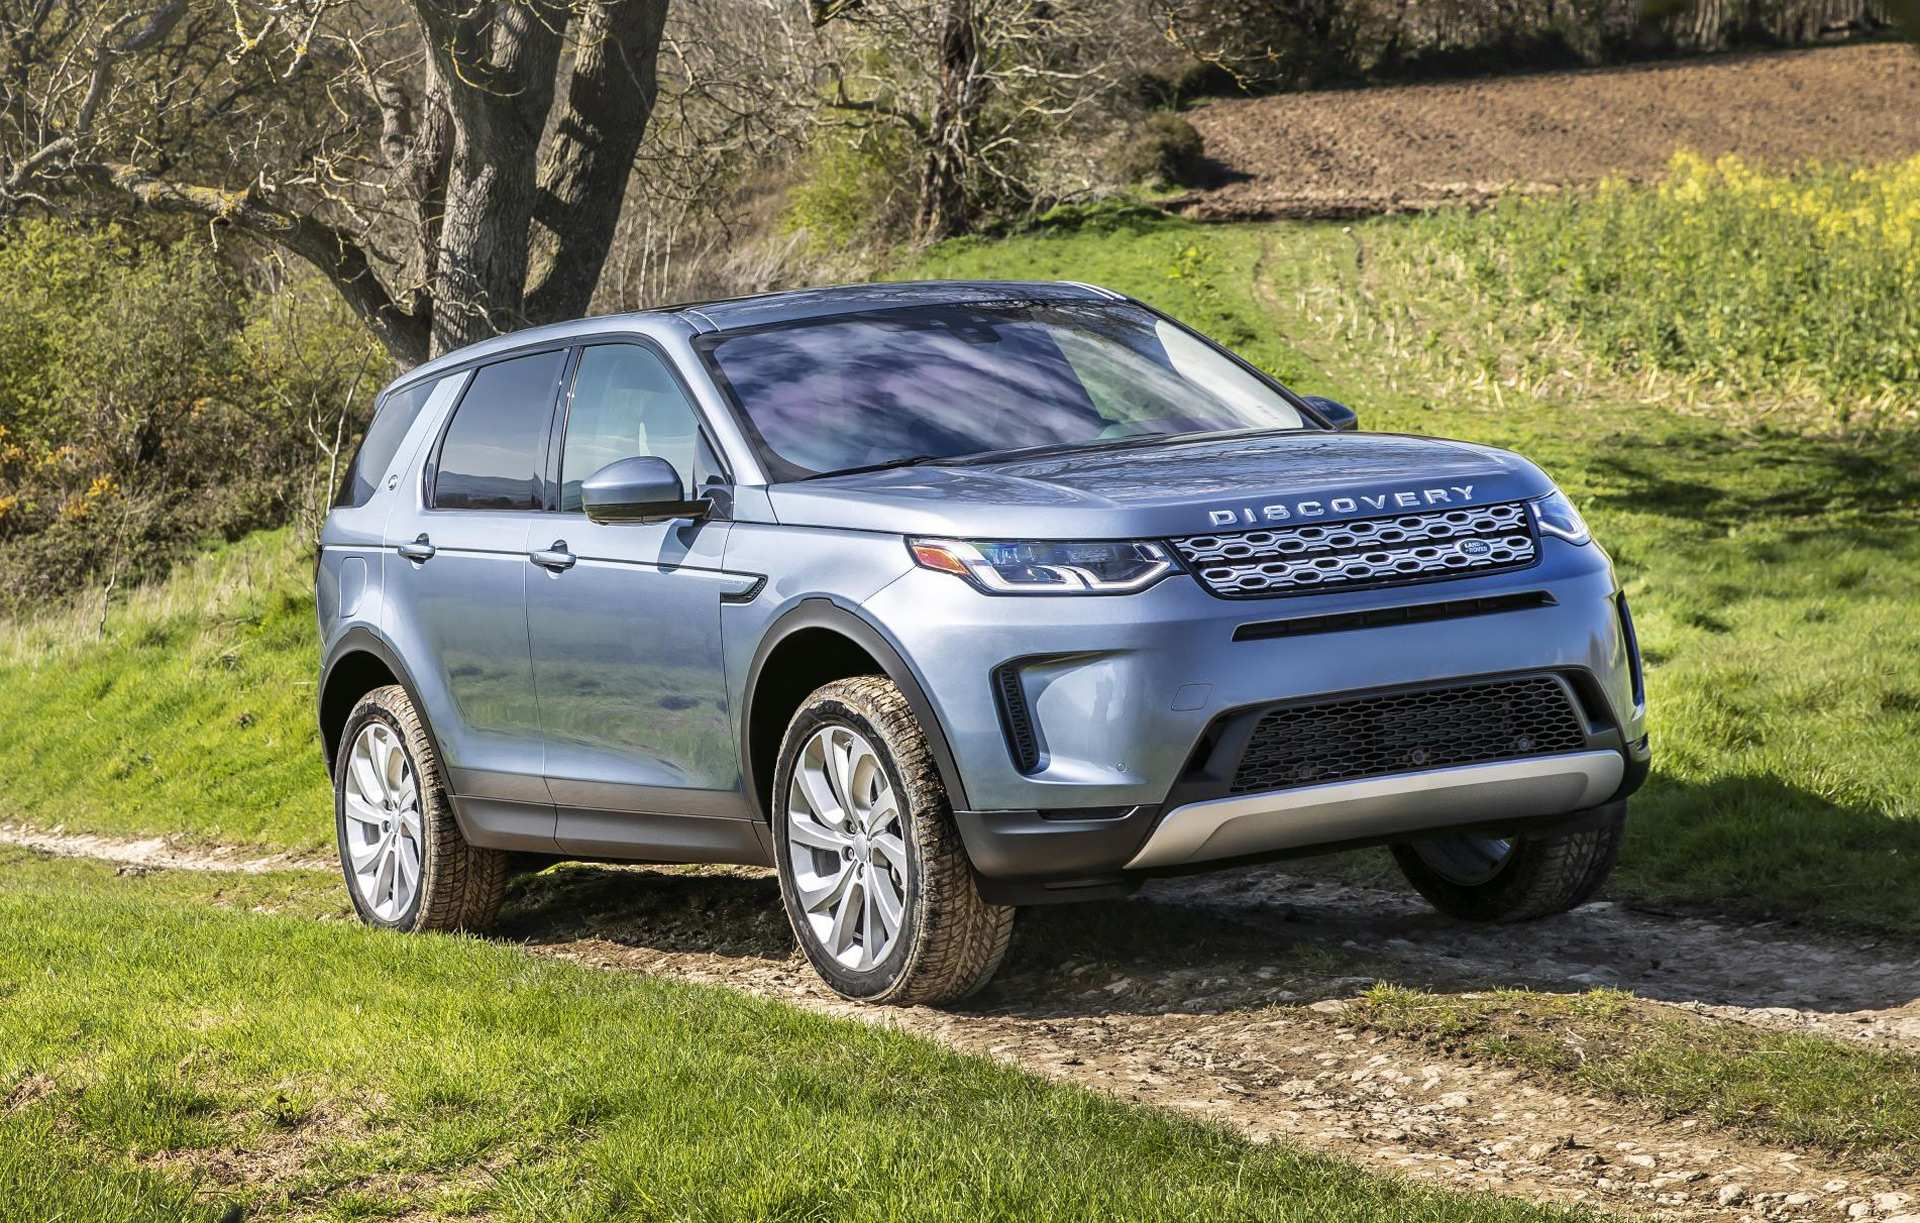 97 The Best 2020 Land Rover Discovery Specs